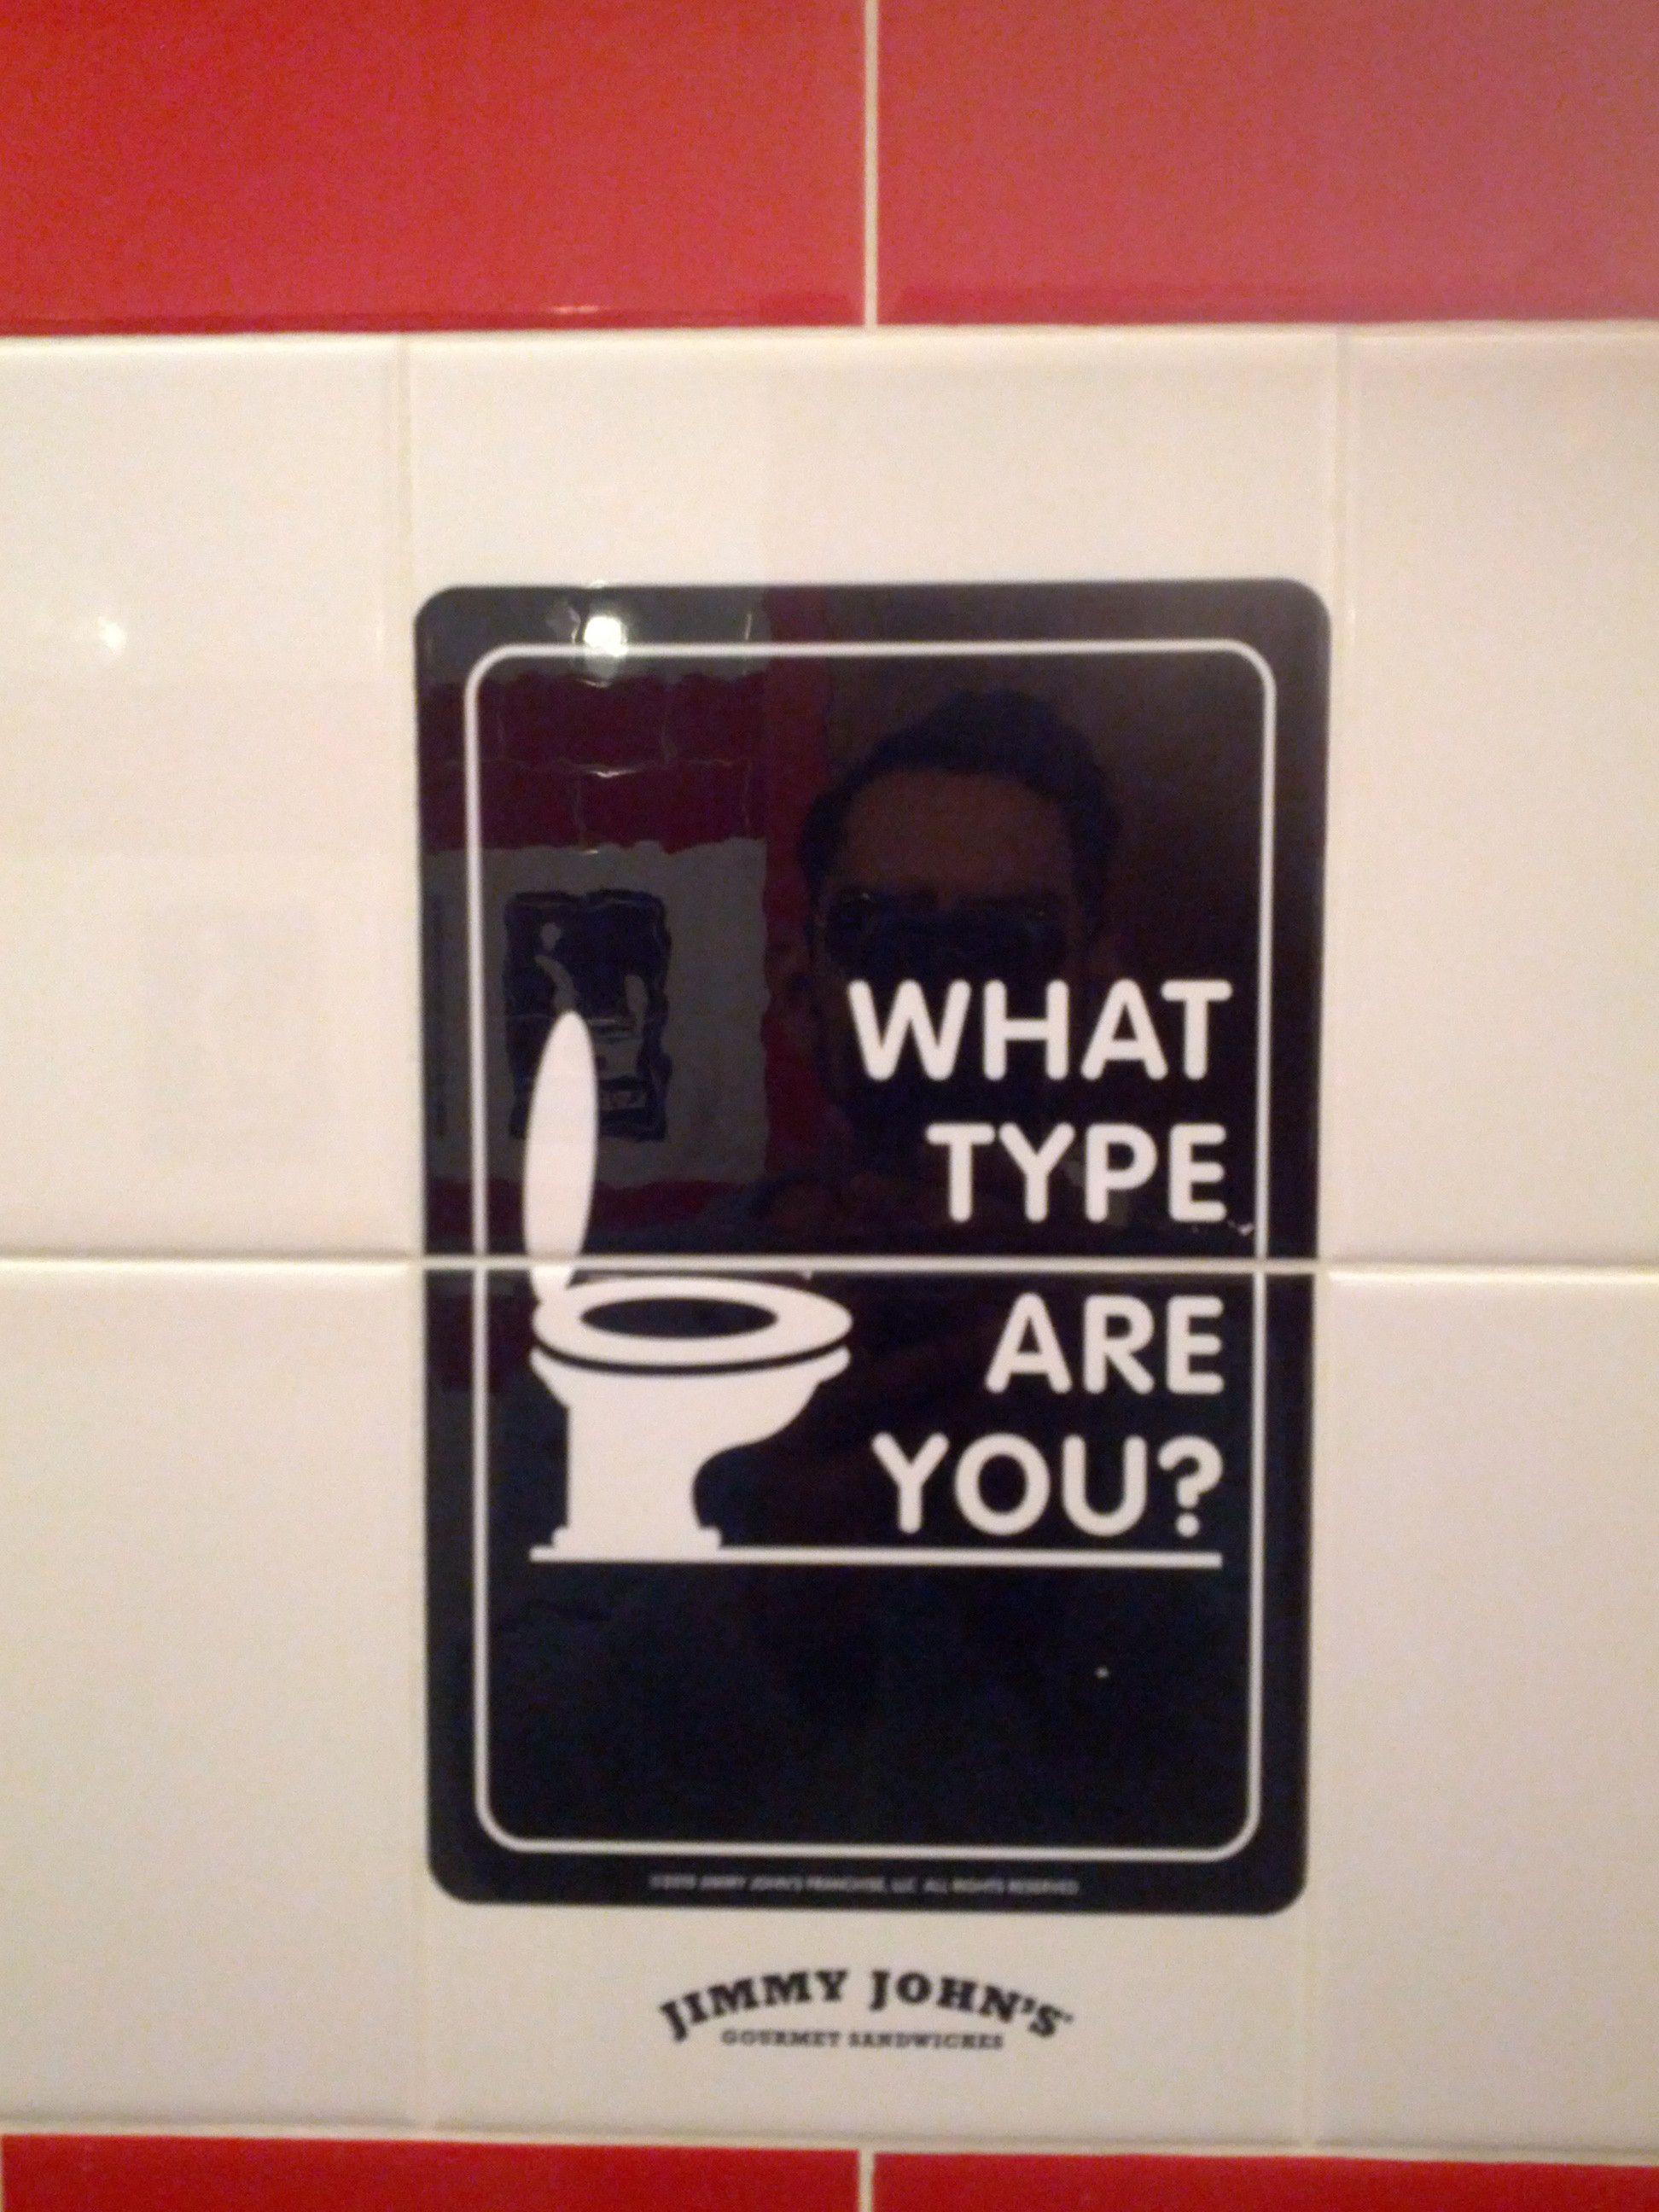 Jimmy Johns  Has Brilliant Bathroom Tiles That Ask You What Type of Restroom  User You Are   Memebase   Funny Memes. Jimmy Johns  Has Brilliant Bathroom Tiles That Ask You What Type